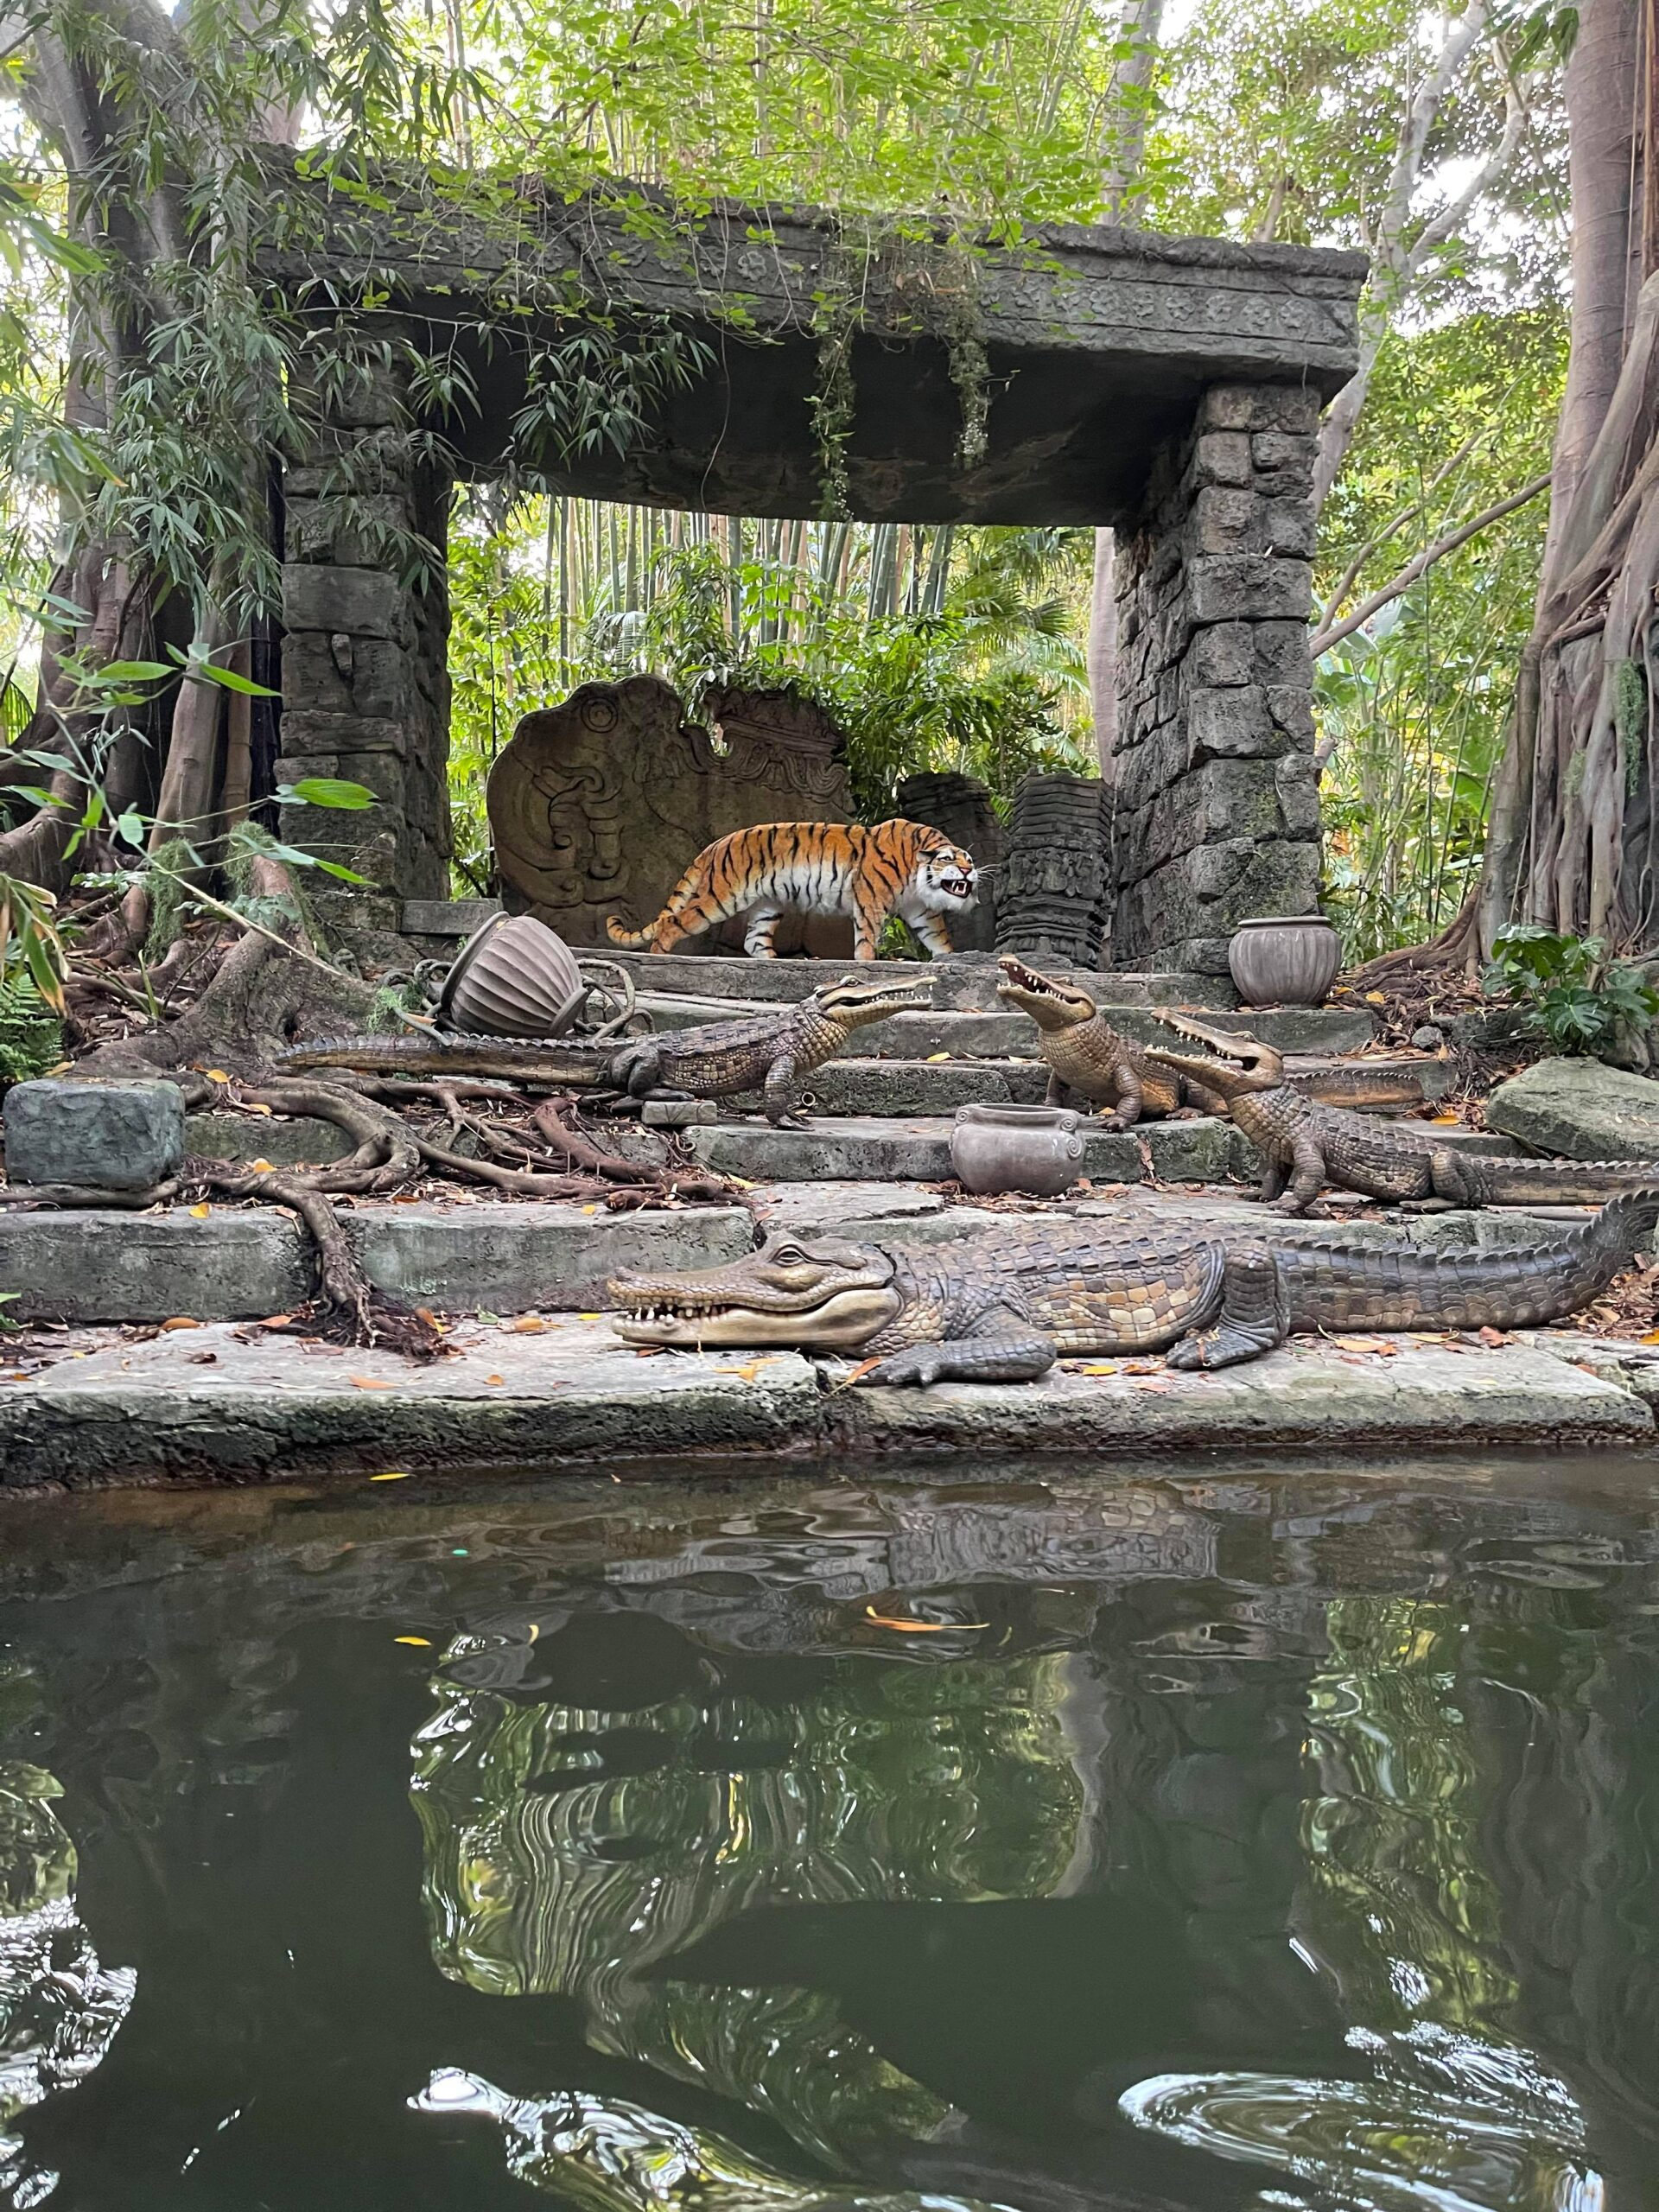 Take a voyage on the all new Jungle Cruise in Disneyland 6